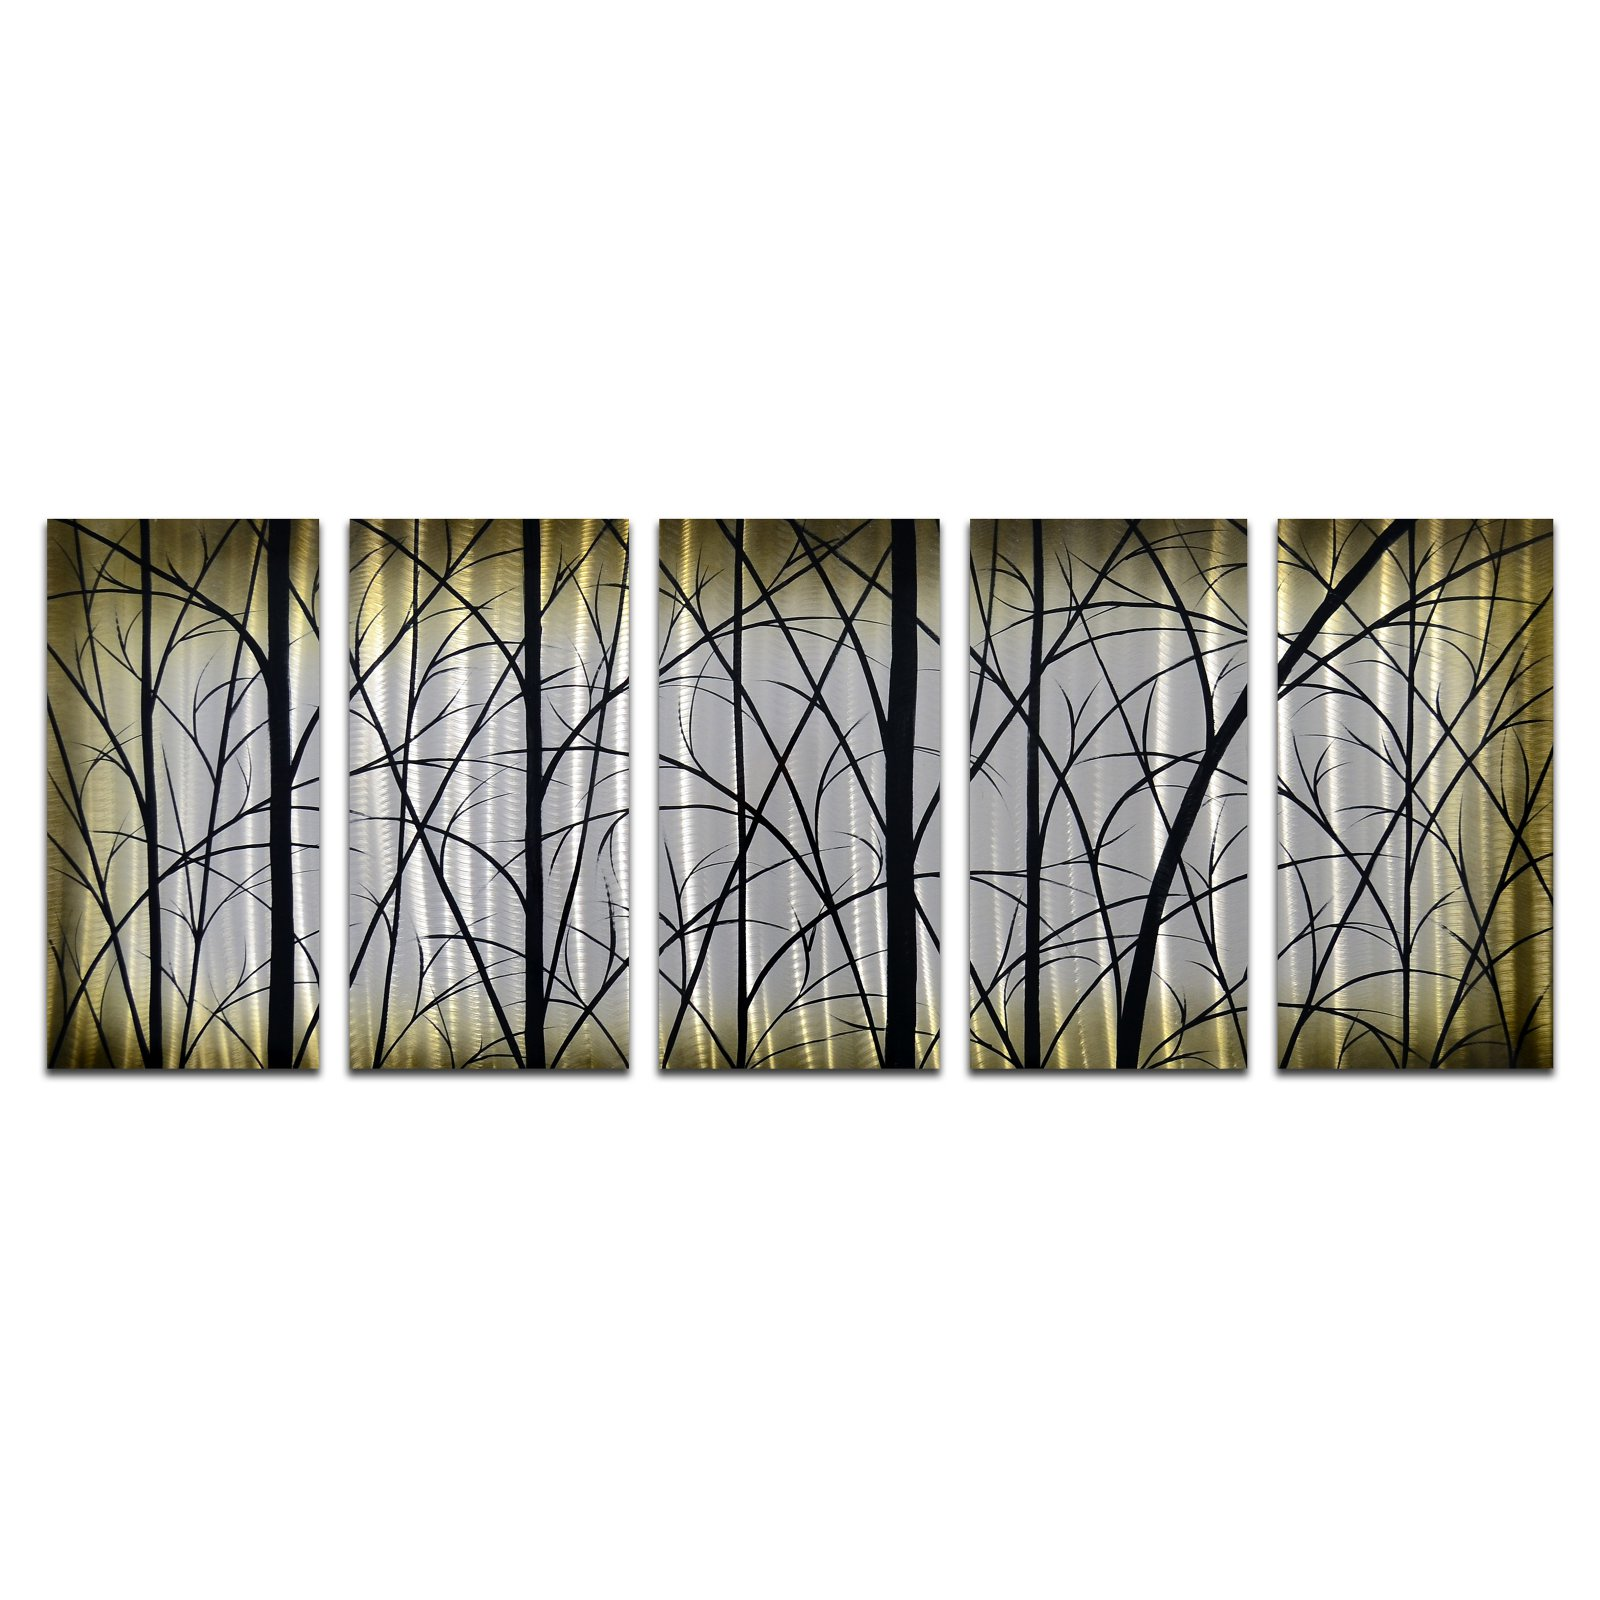 OMAX Imposing Trees Handmade Modern Metal Wall Art - Set of 5